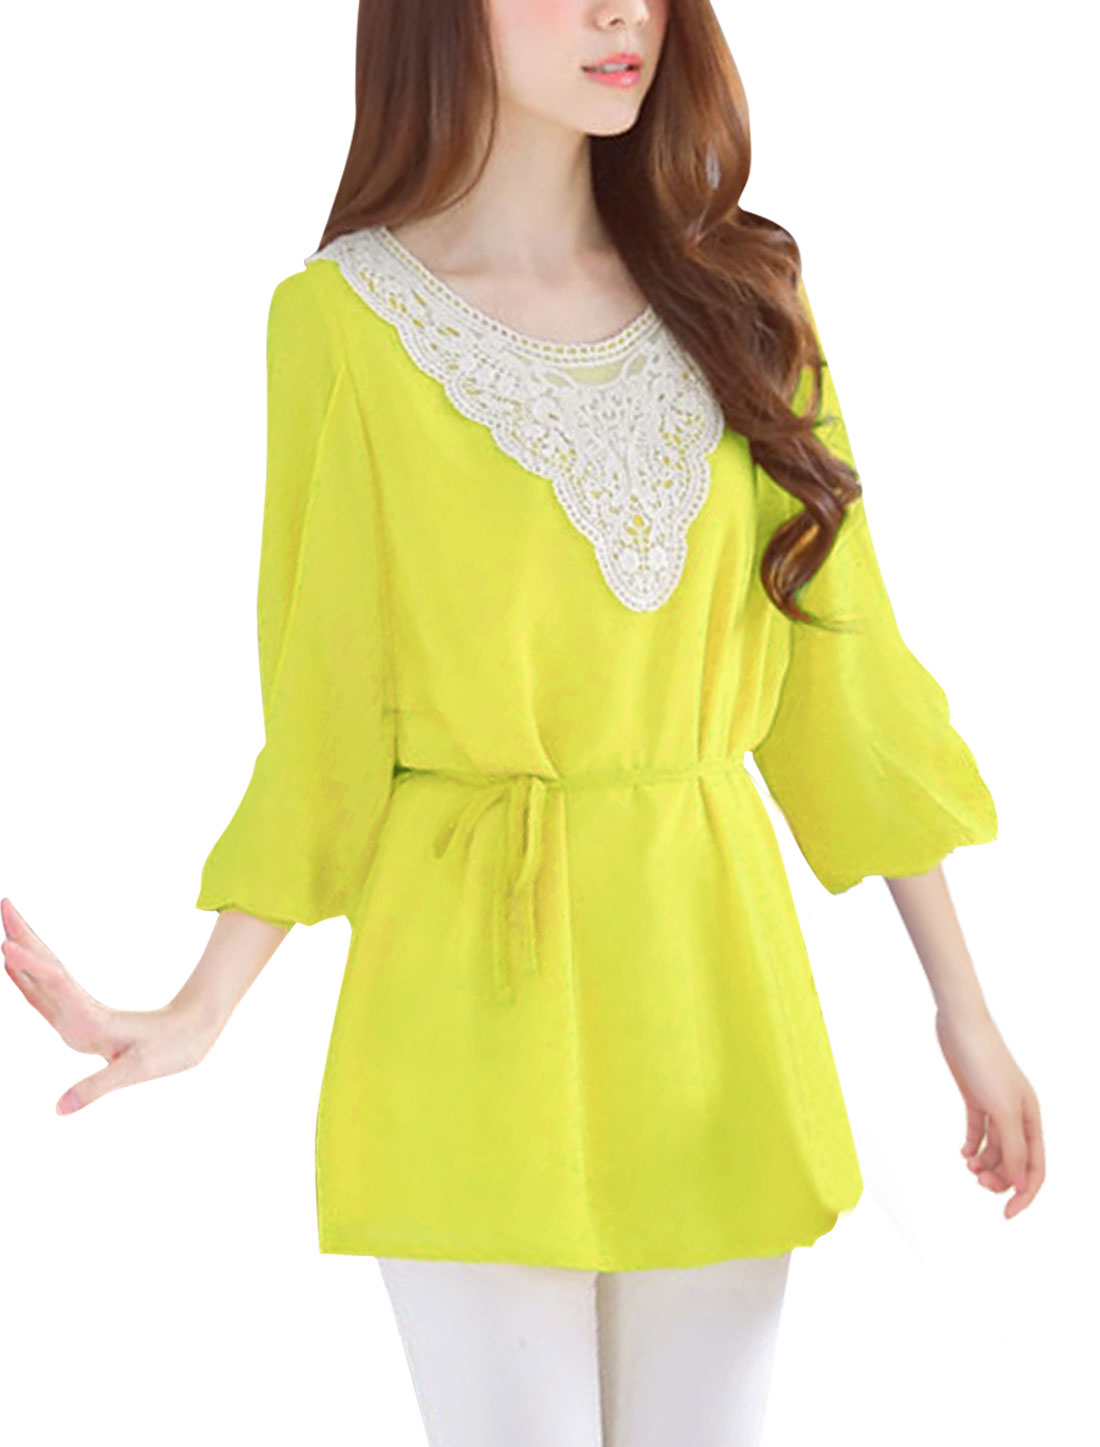 Women Scoop Neck Semi Sheer Stylish Top Shirt Yellow S